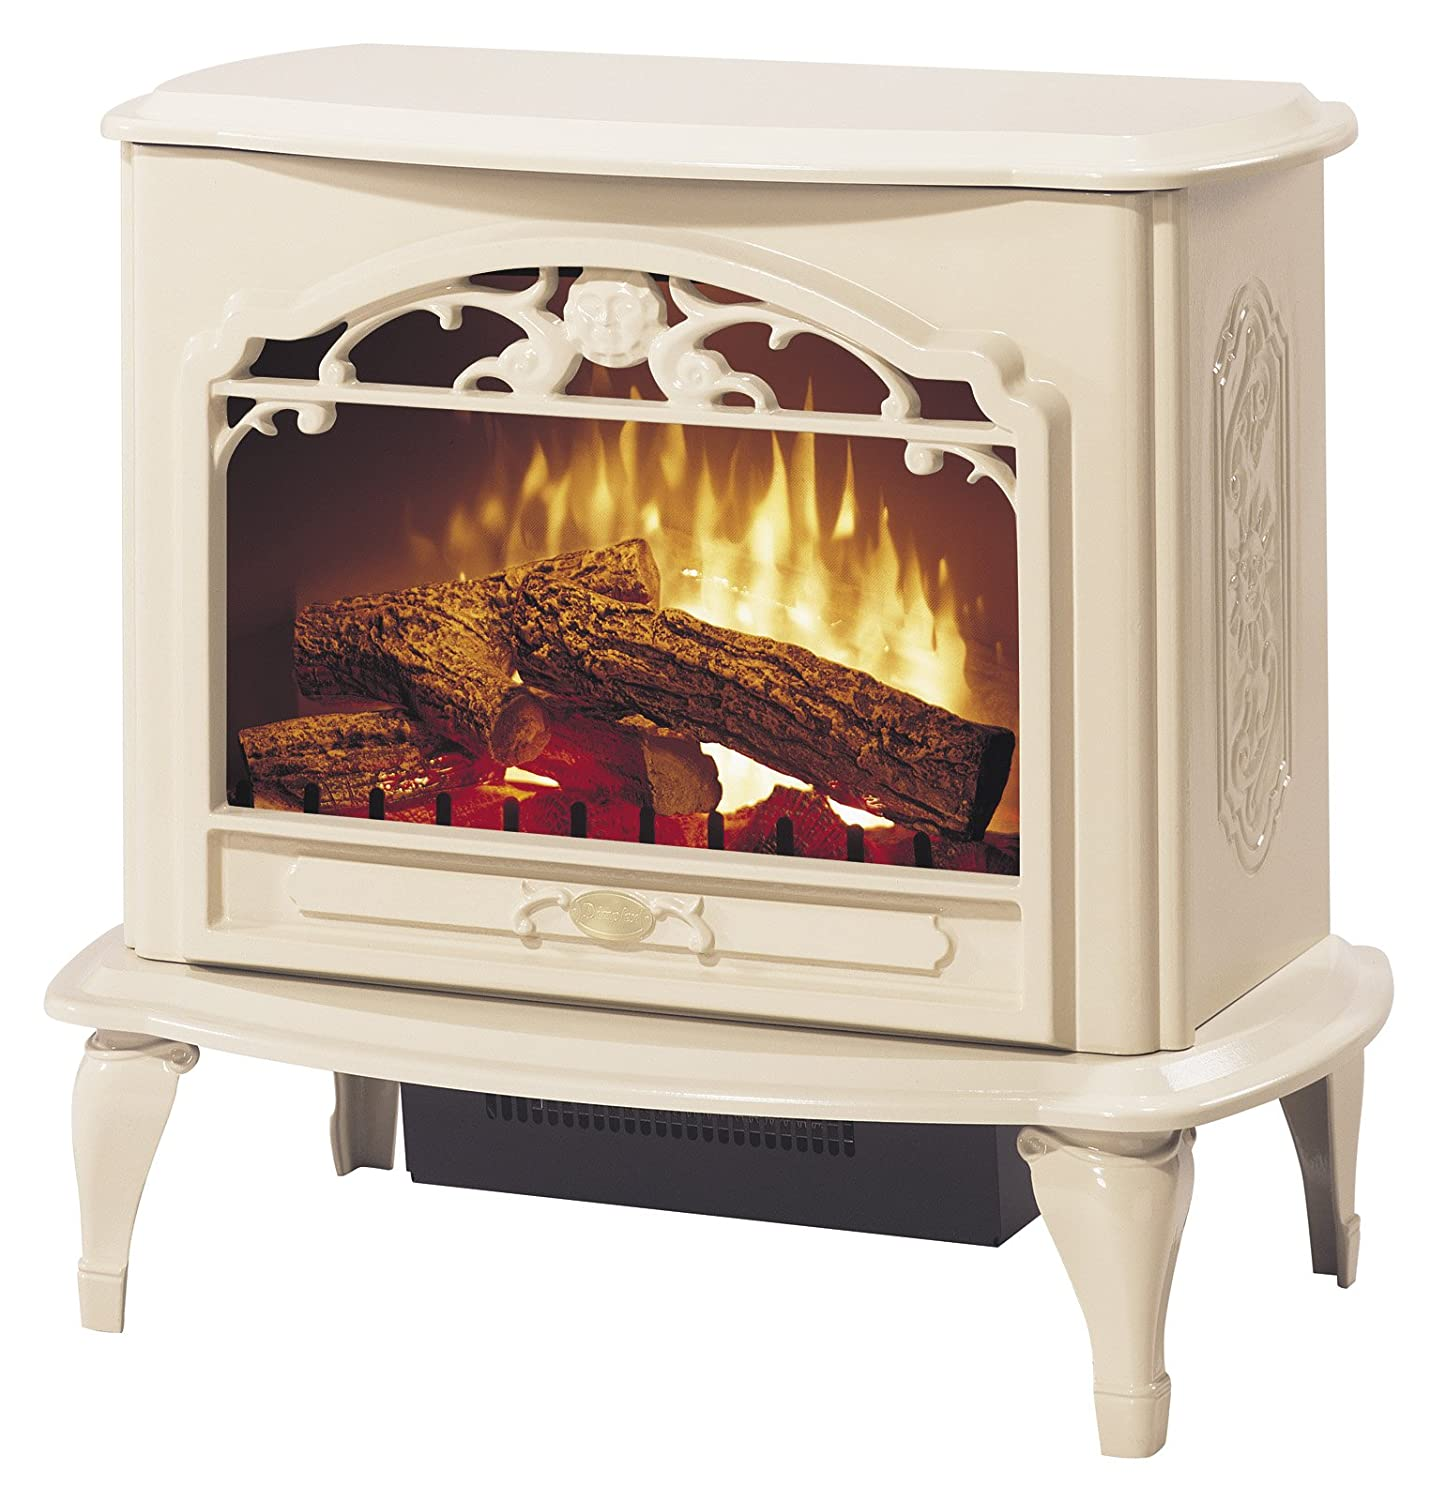 dimplex celeste electric stove review model tds8515tb november